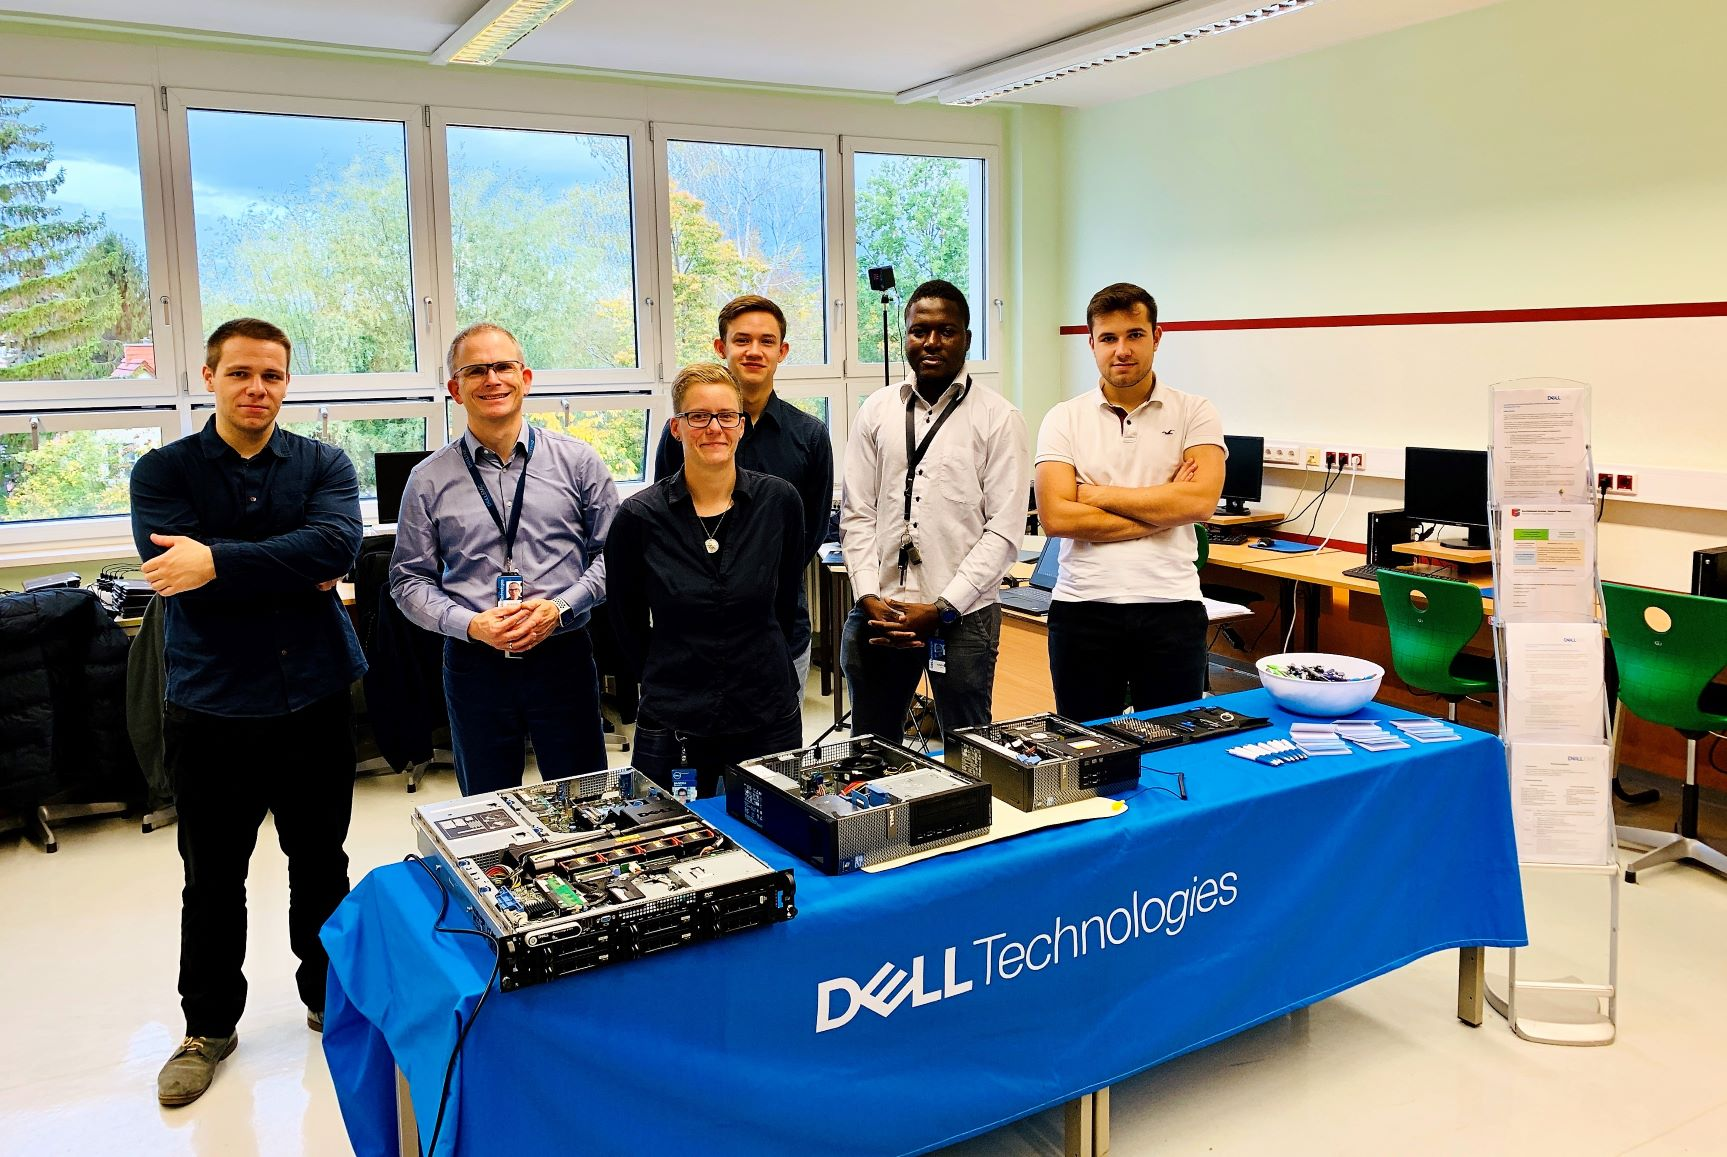 Dell Technologies @ School.